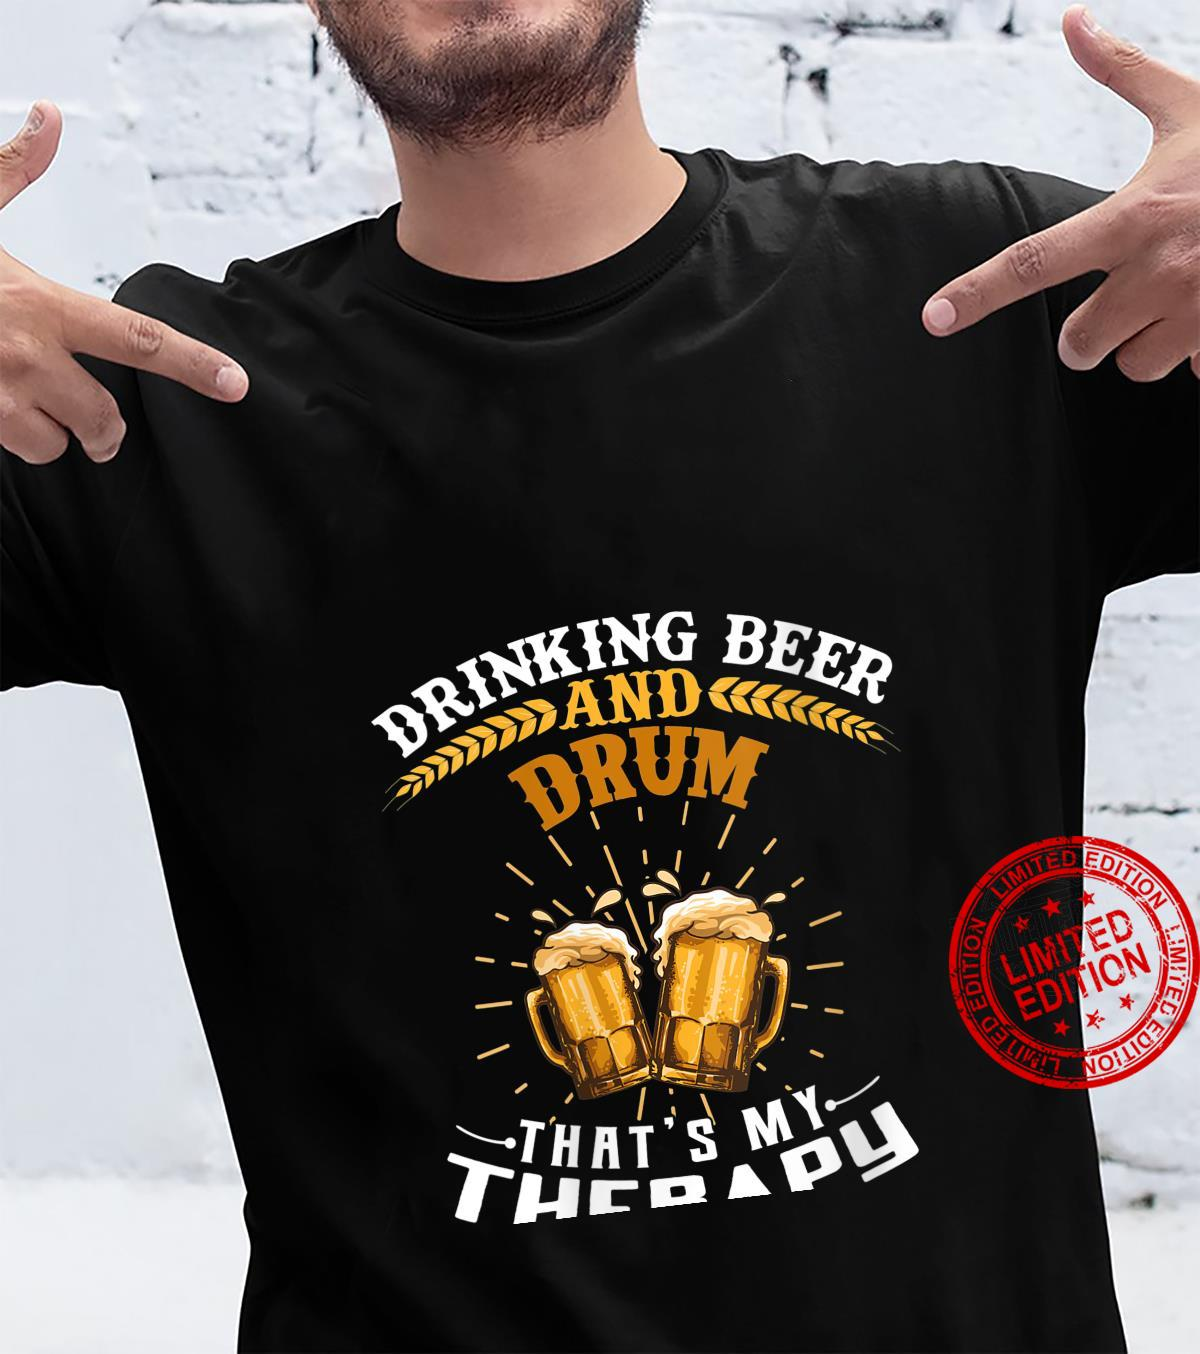 Womens Drinking Beer And Drum That's My Therapy Shirt